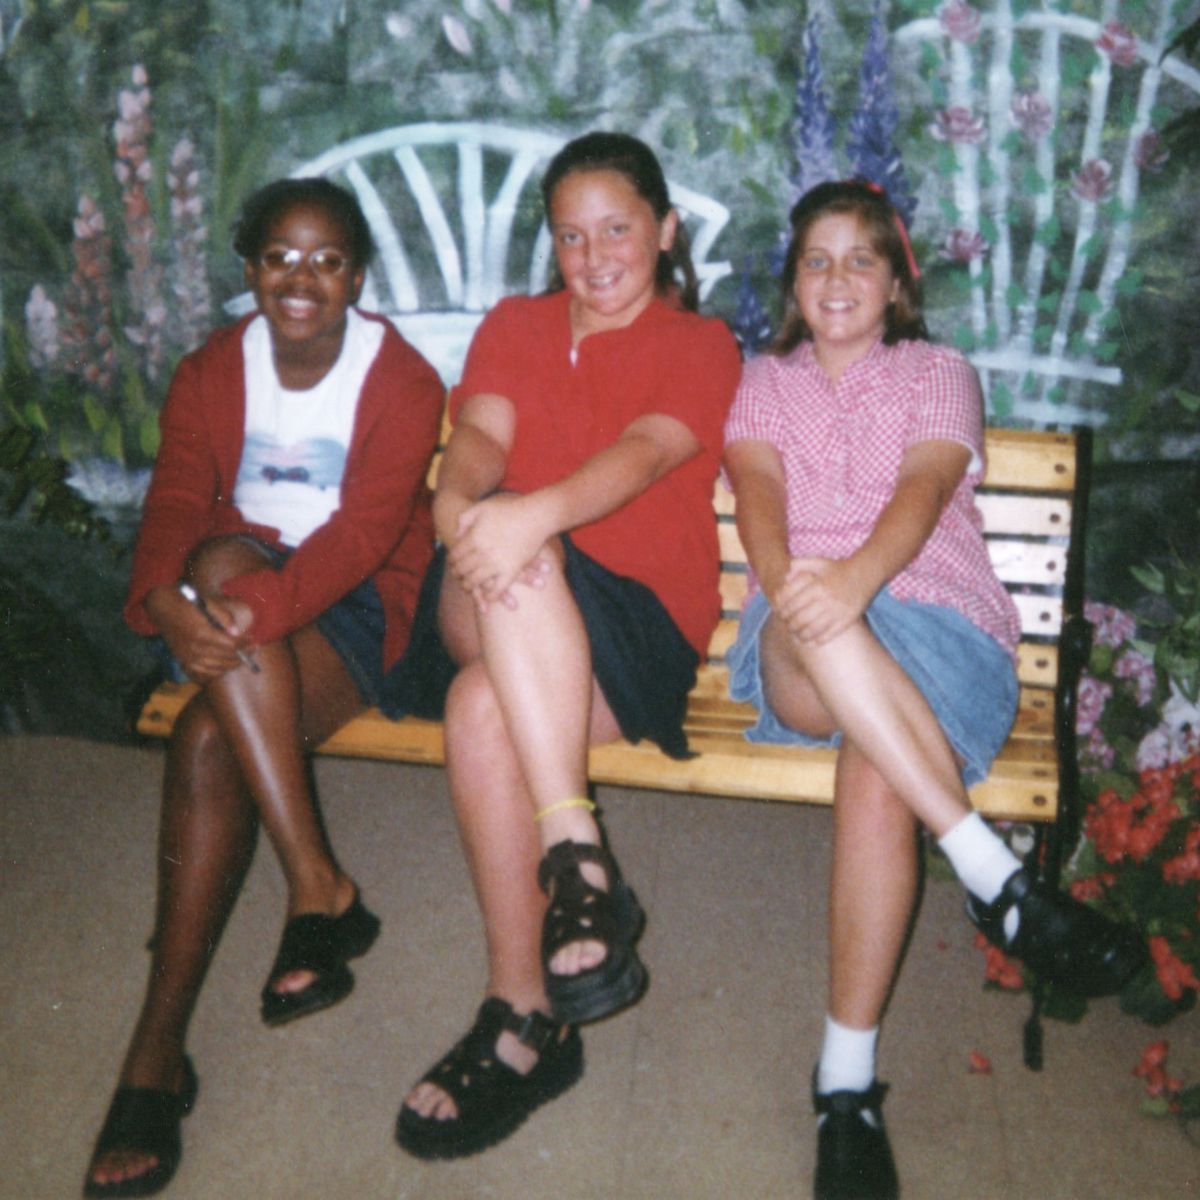 Three girls sit on a bench with their legs identically crossed, posing for a portrait together.